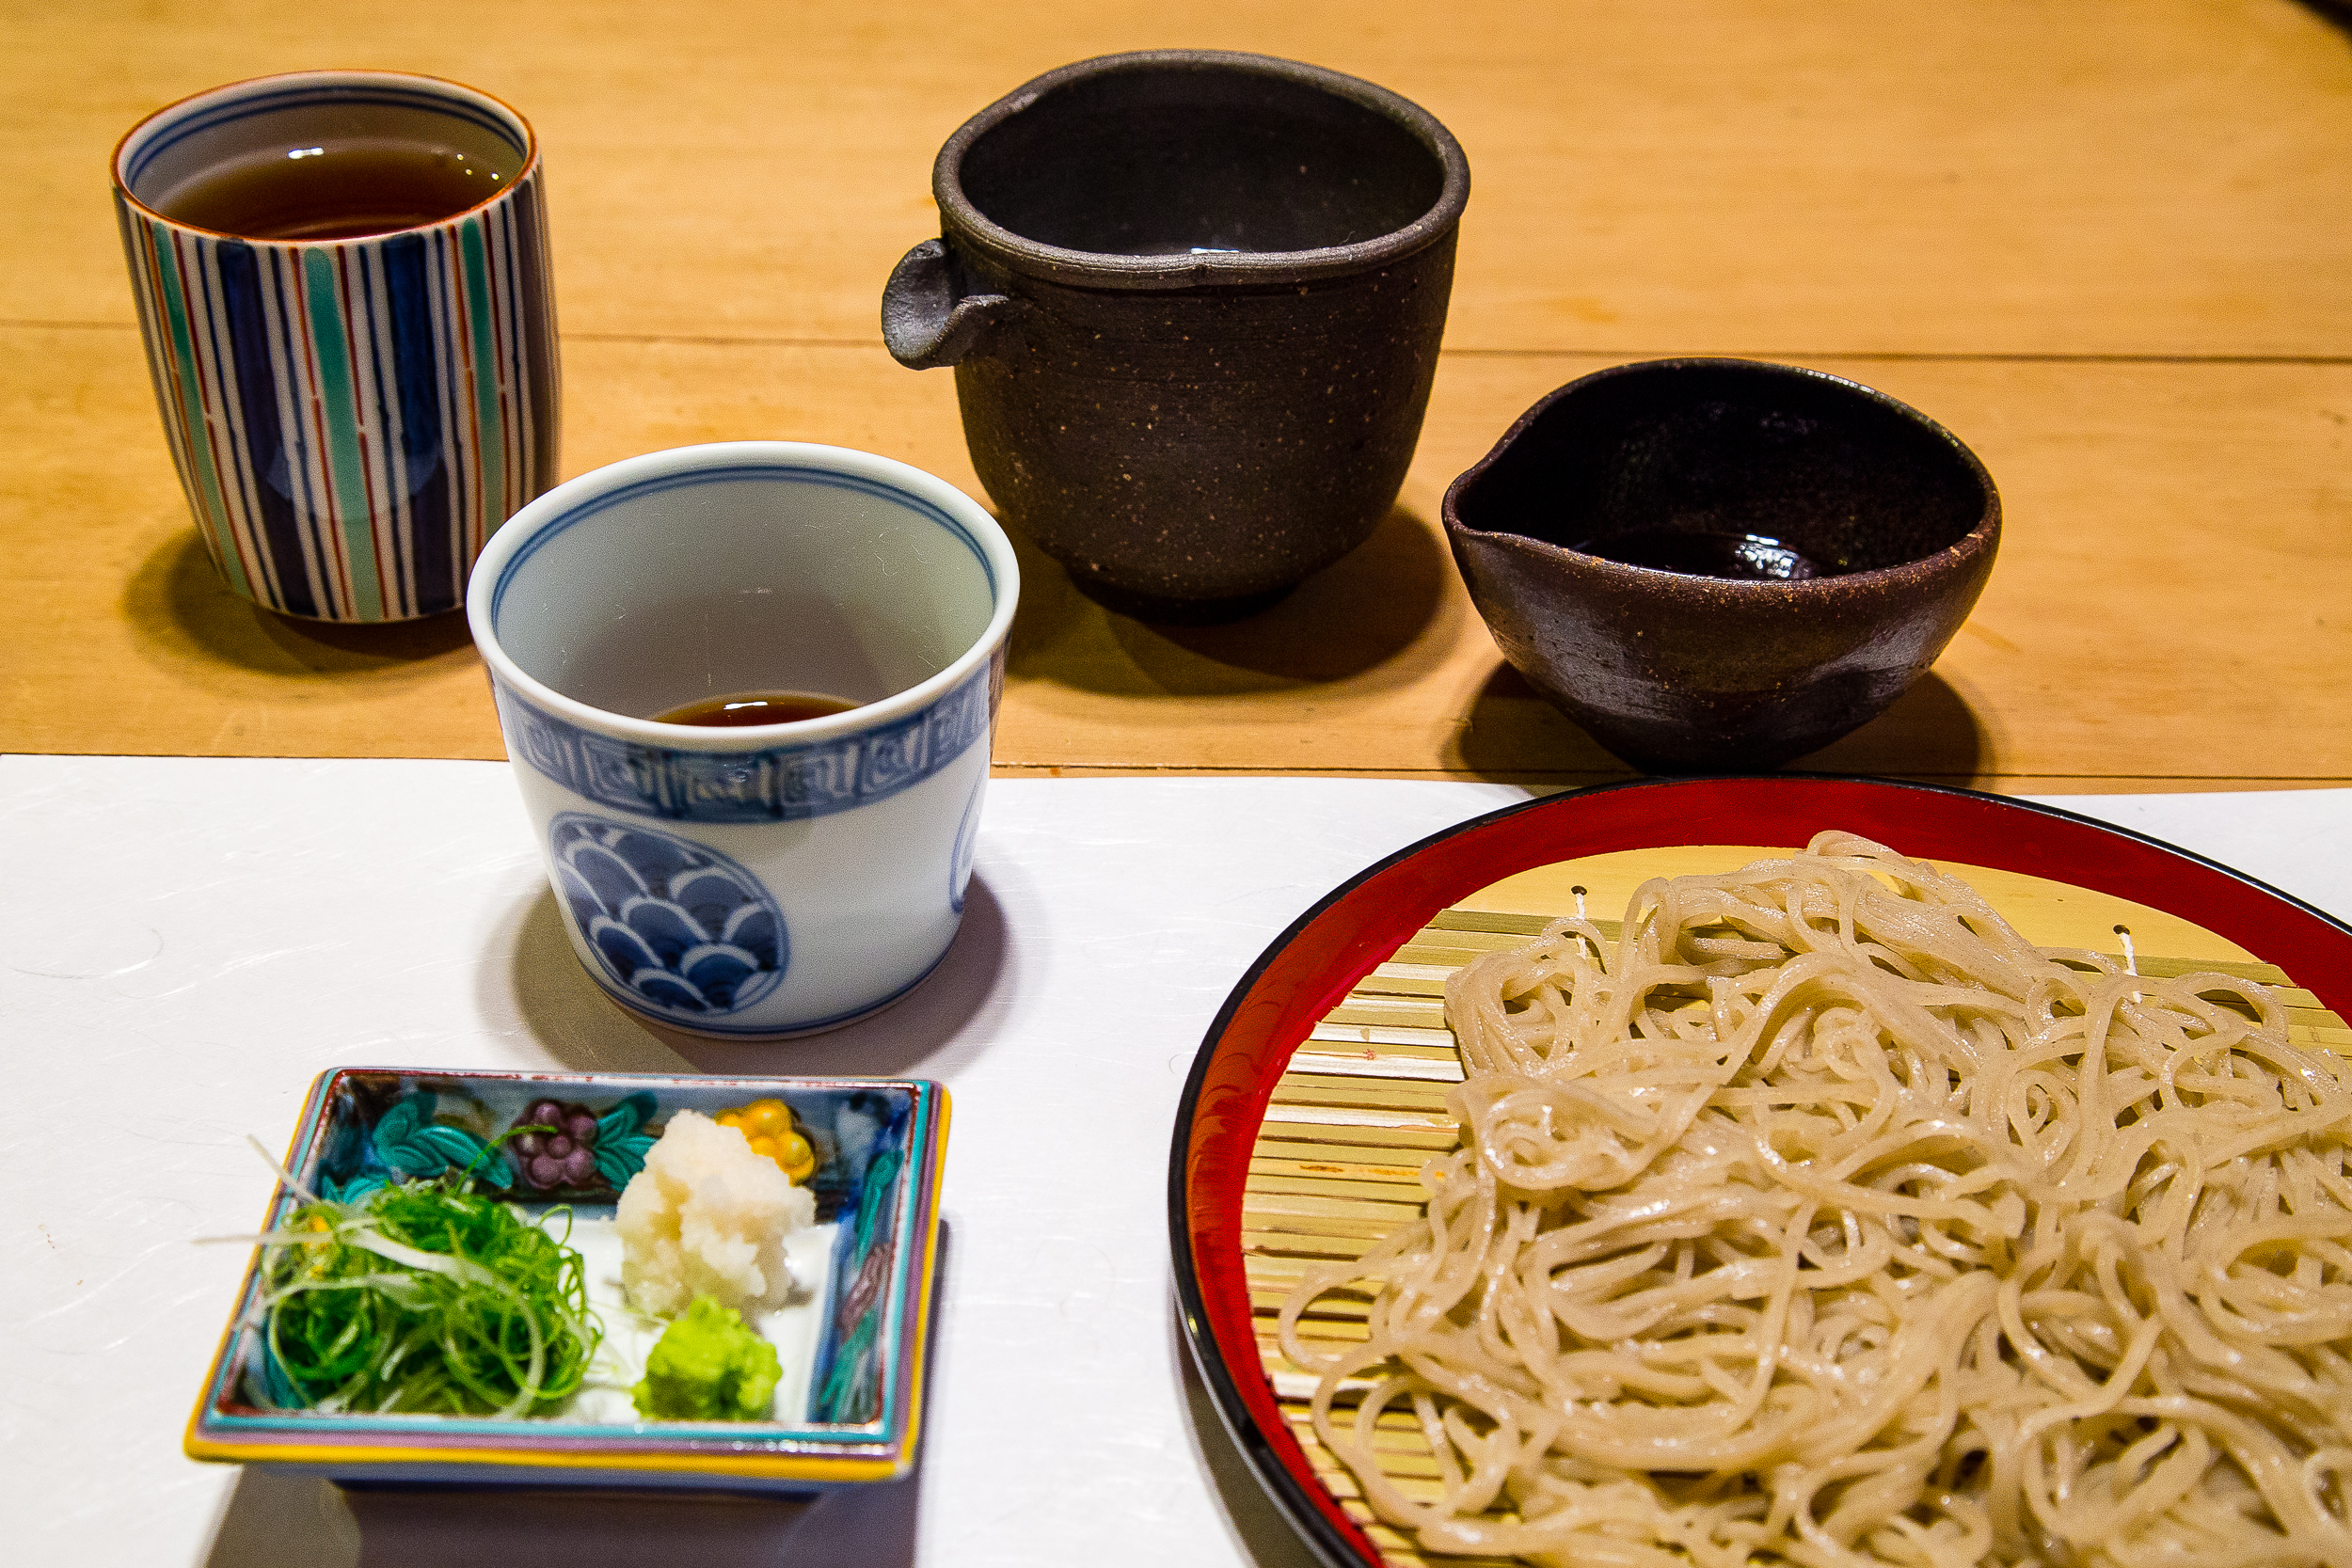 Soba course. From upper left corner: hot tea, dipping sauce, soba water, soy? sauce, toppings to add to dipping sauce.